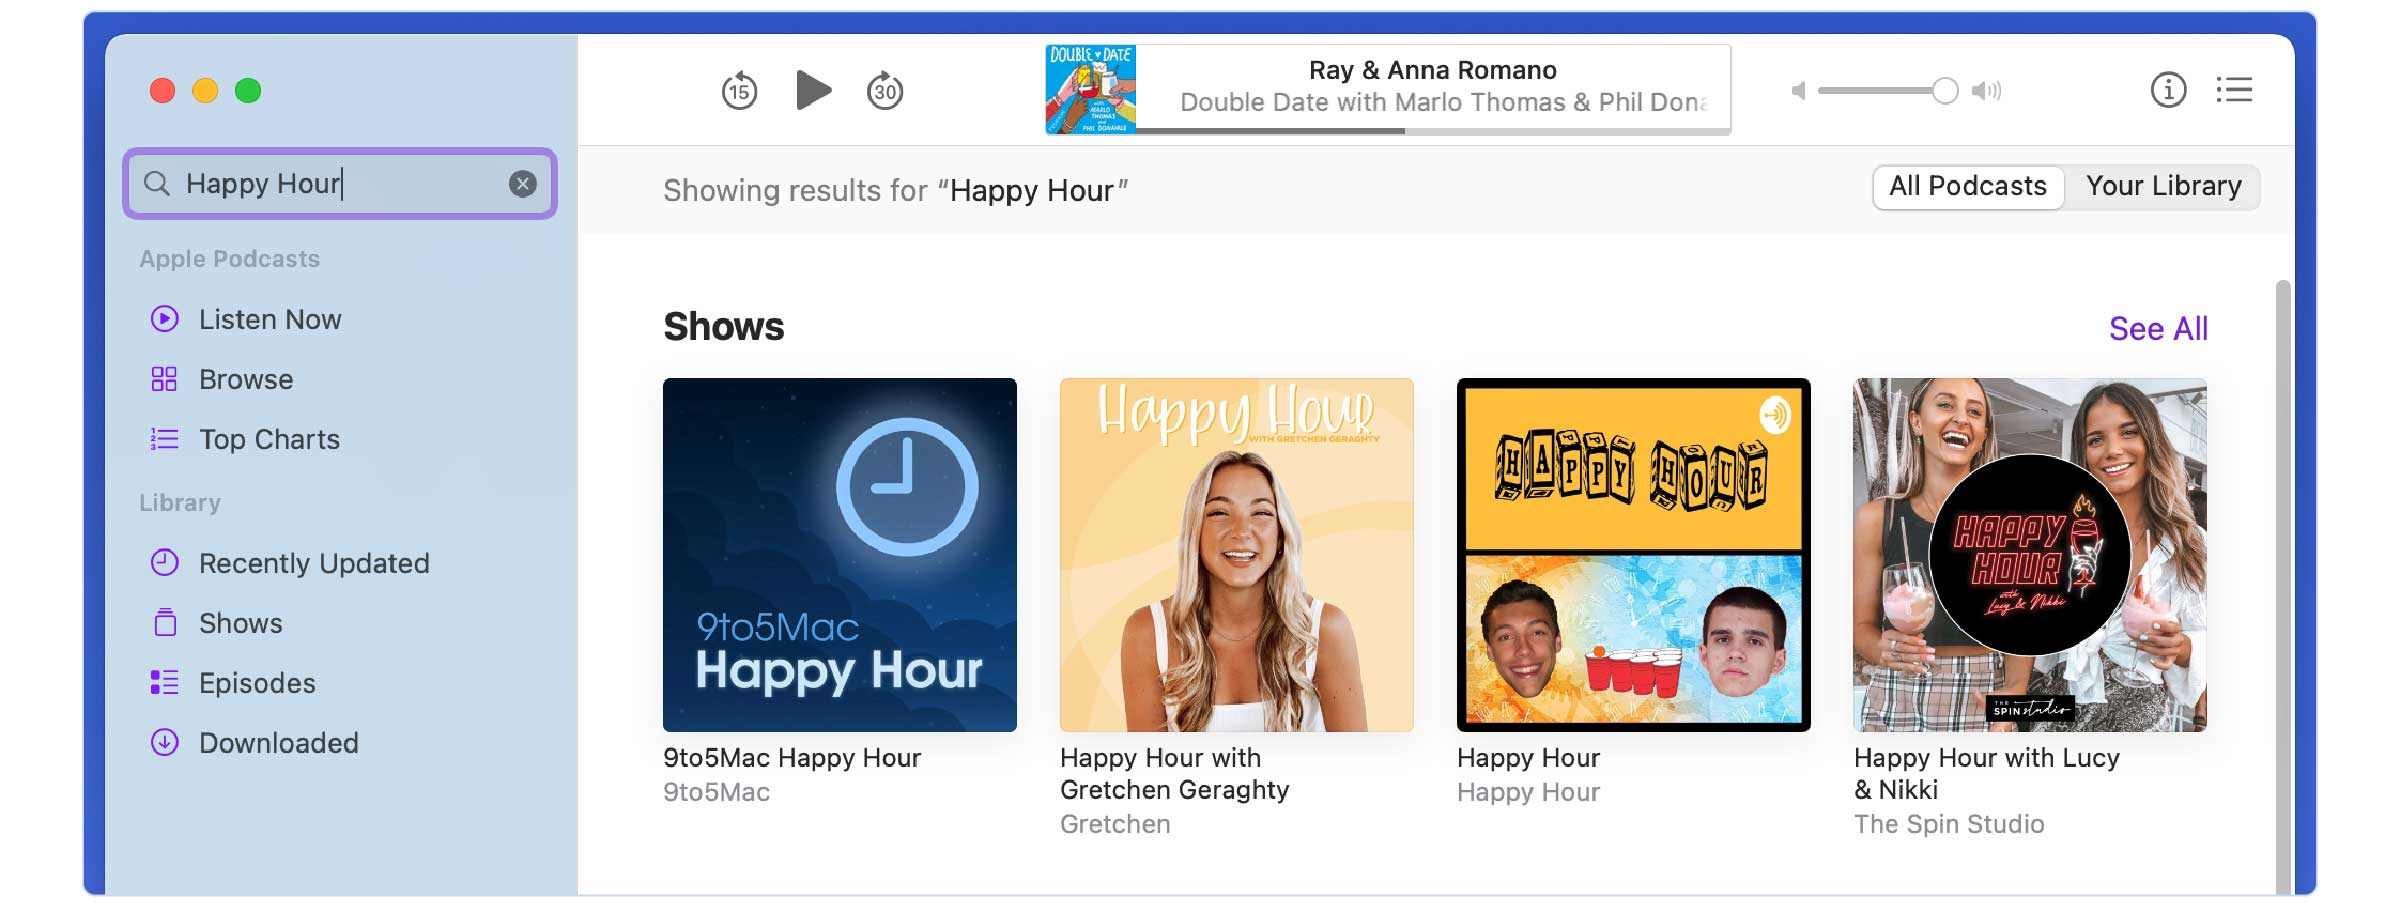 Screenshot of a search inside Apple Podcasts for the podcast name 'happy hour' displaying 4 results of podcasts with the name 'happy hour' or similar